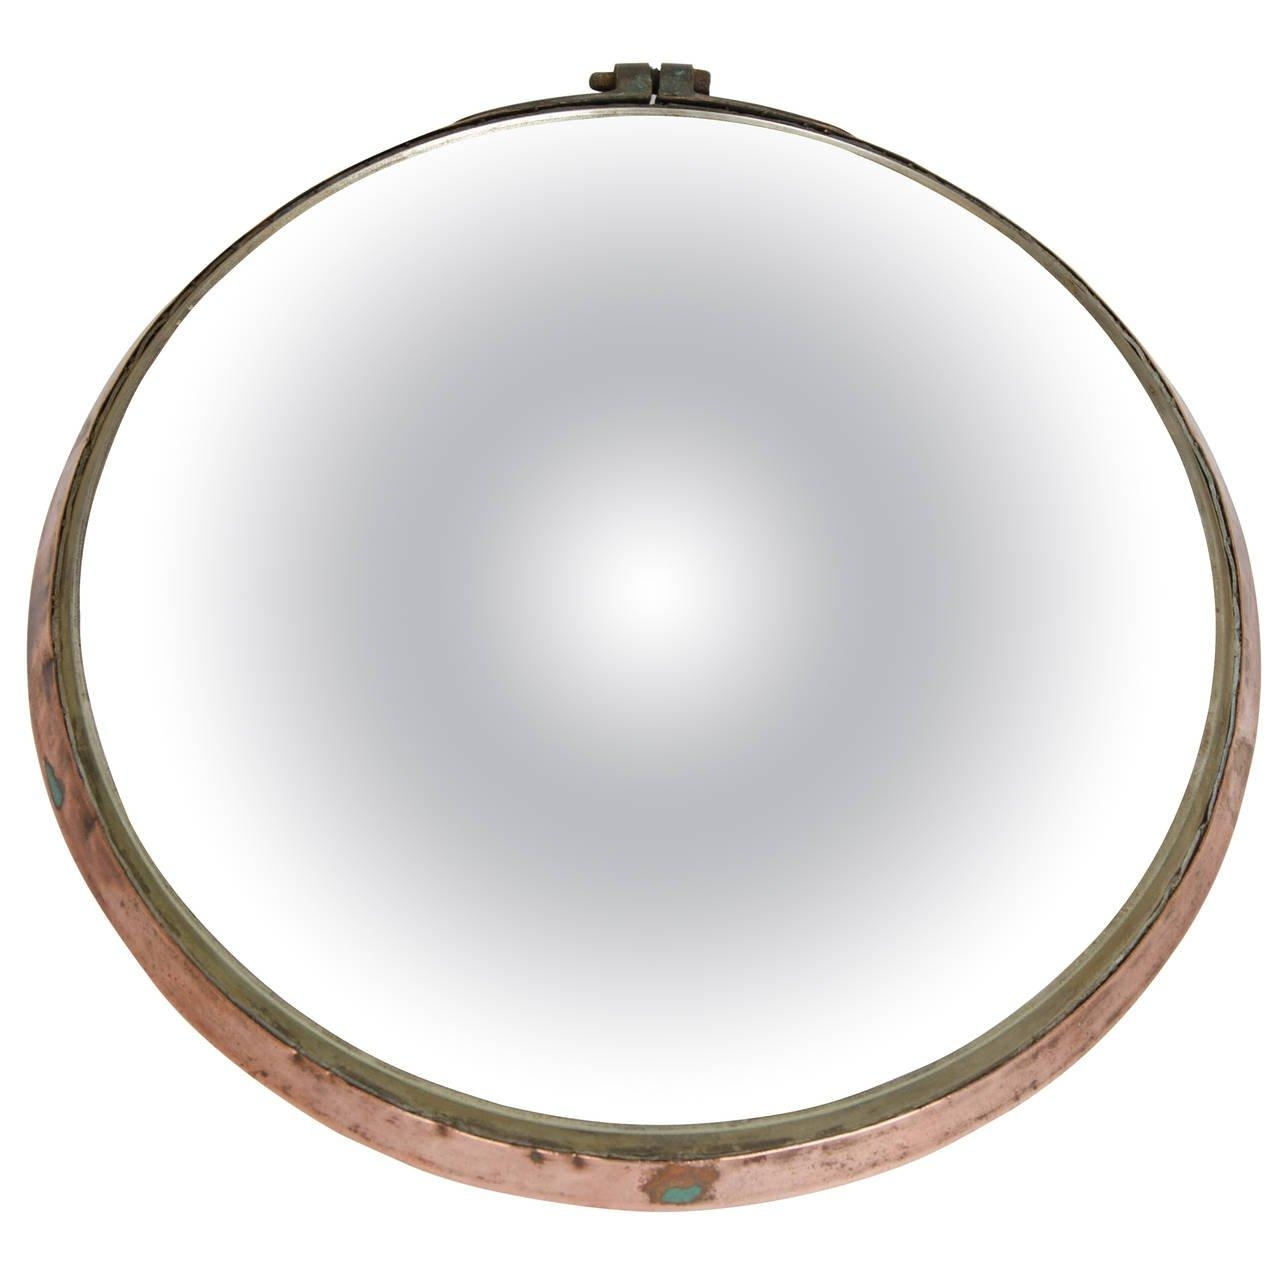 Concave Mirror For Sale 147 Inspiring Style For Convex Mirrors Throughout Small Convex Mirrors For Sale (Image 3 of 20)